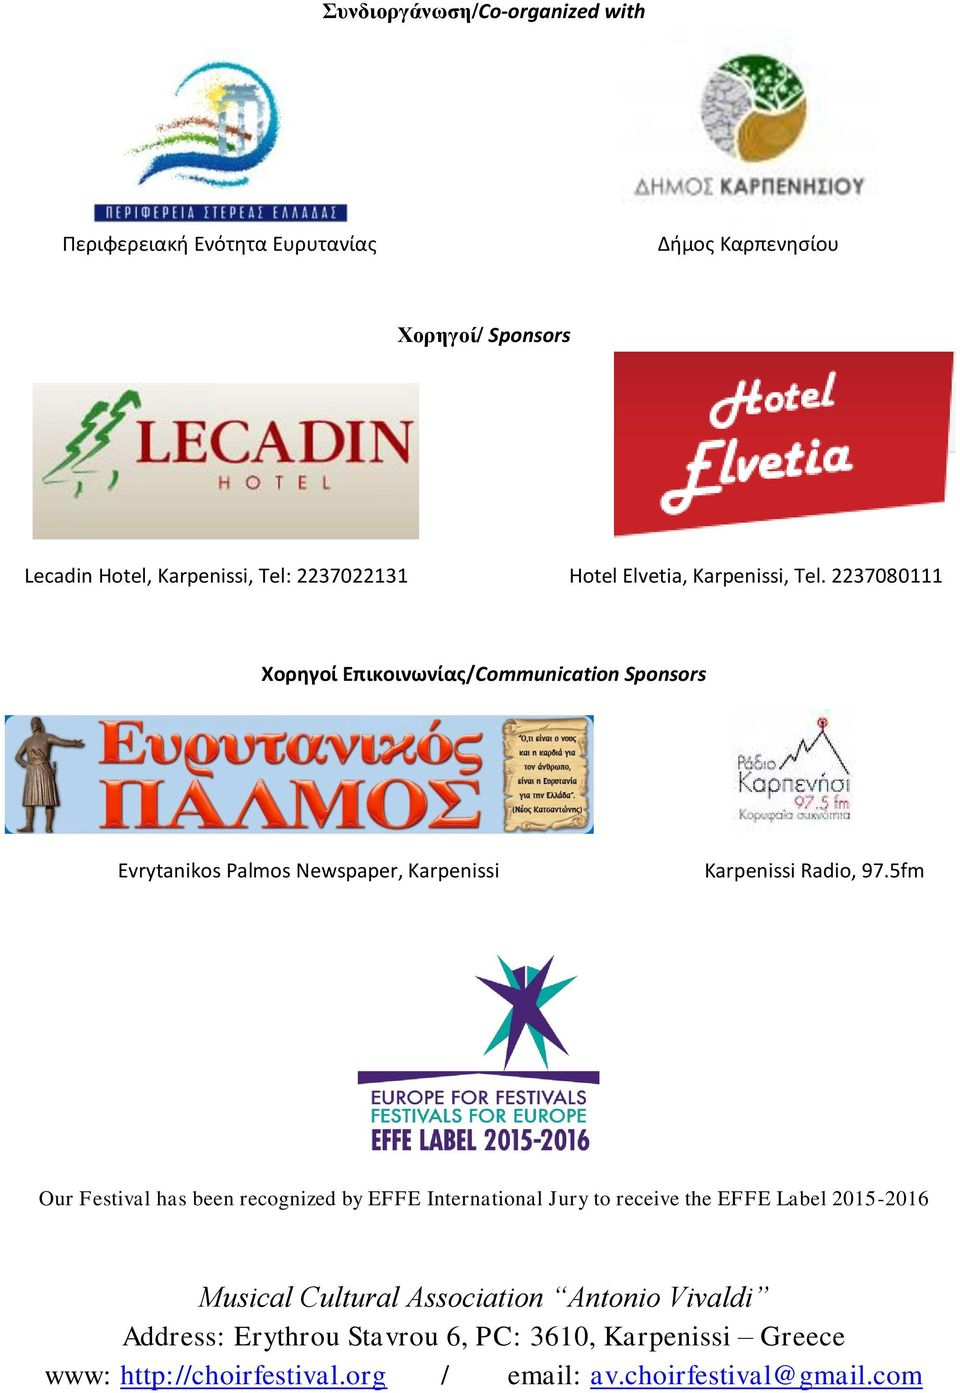 2237080111 Χορηγοί Επικοινωνίας/Communication Sponsors Evrytanikos Palmos Newspaper, Karpenissi Karpenissi Radio, 97.